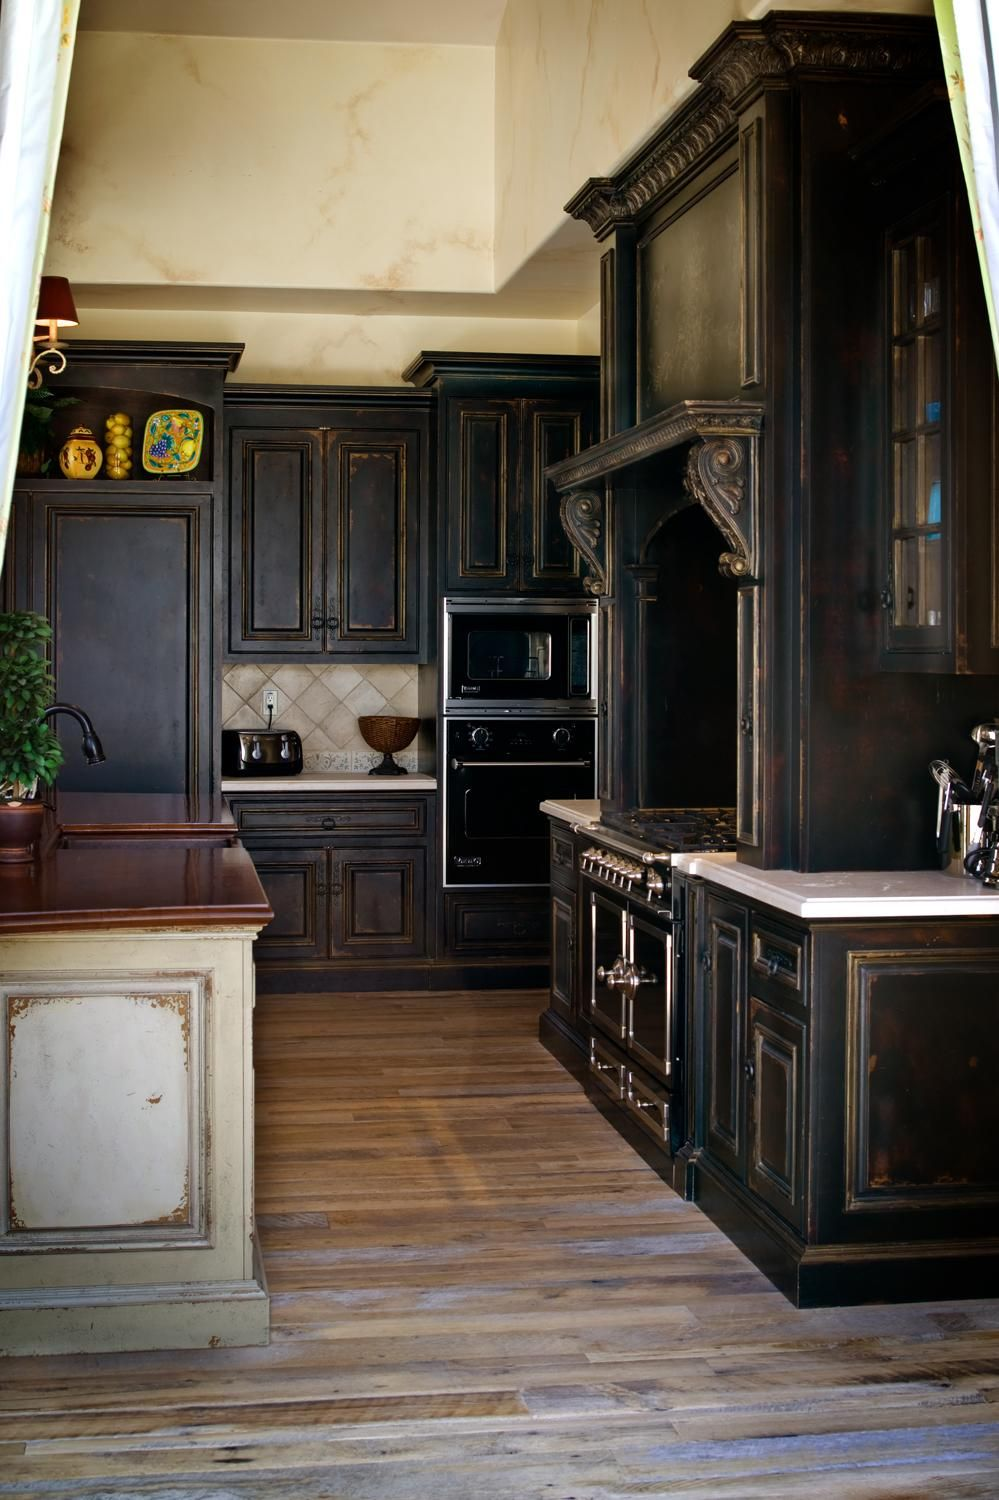 Colored Kitchen Cabinets | Home improvement | Pinterest | Black ...